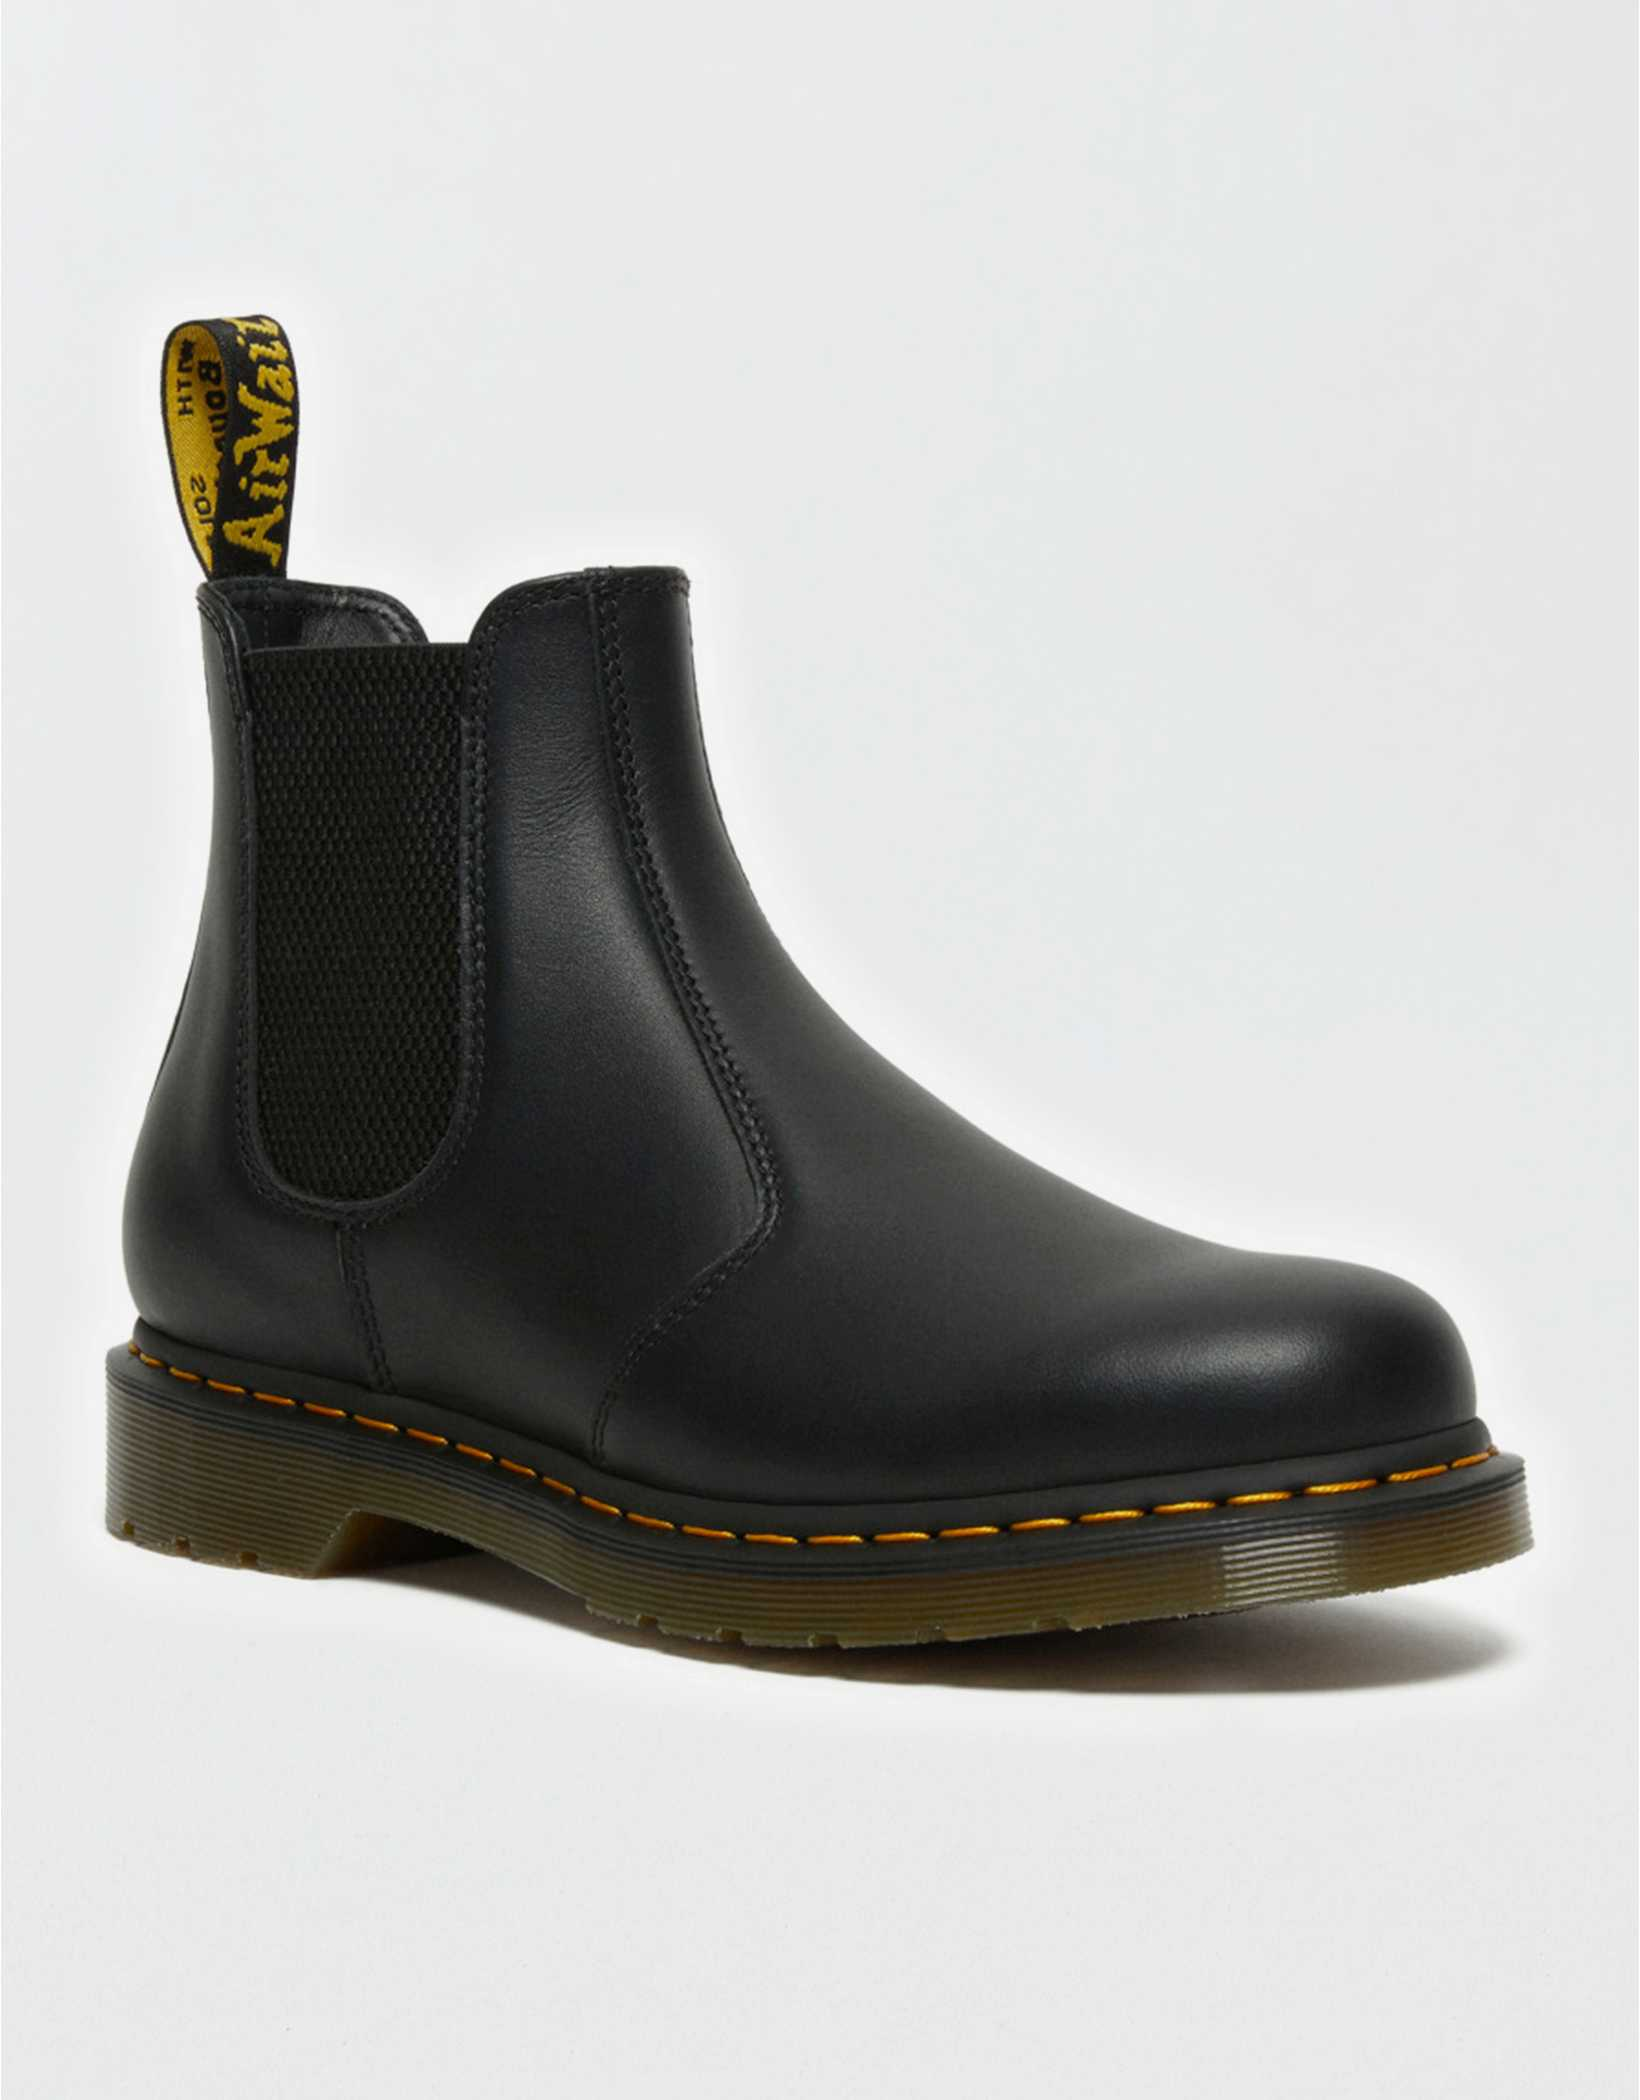 Dr. Martens 2976 Nappa Chelsea Boot